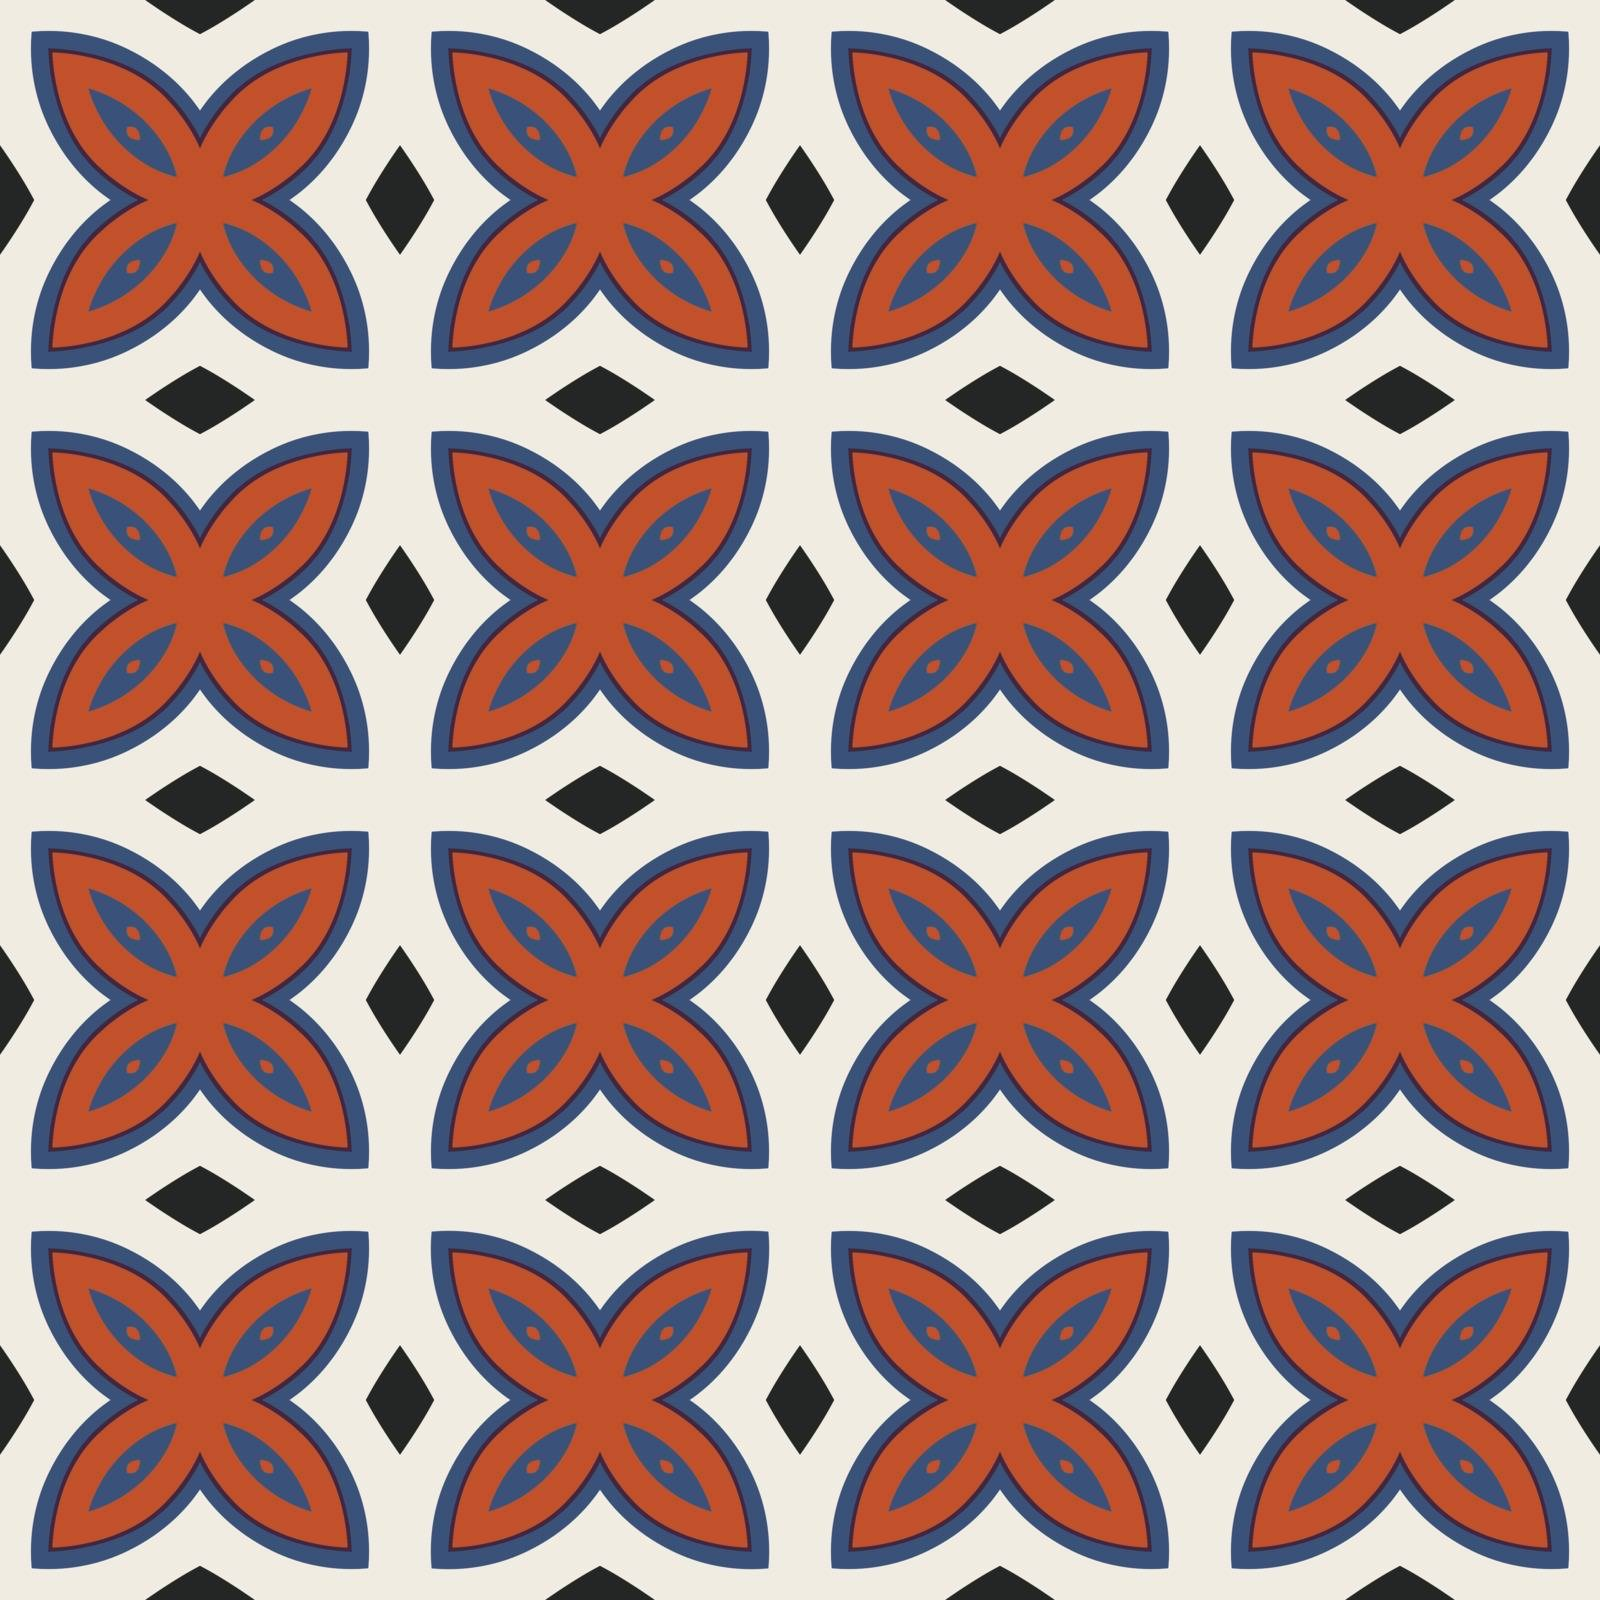 Seamless illustrated pattern made of abstract elements in beige, red, blue and black